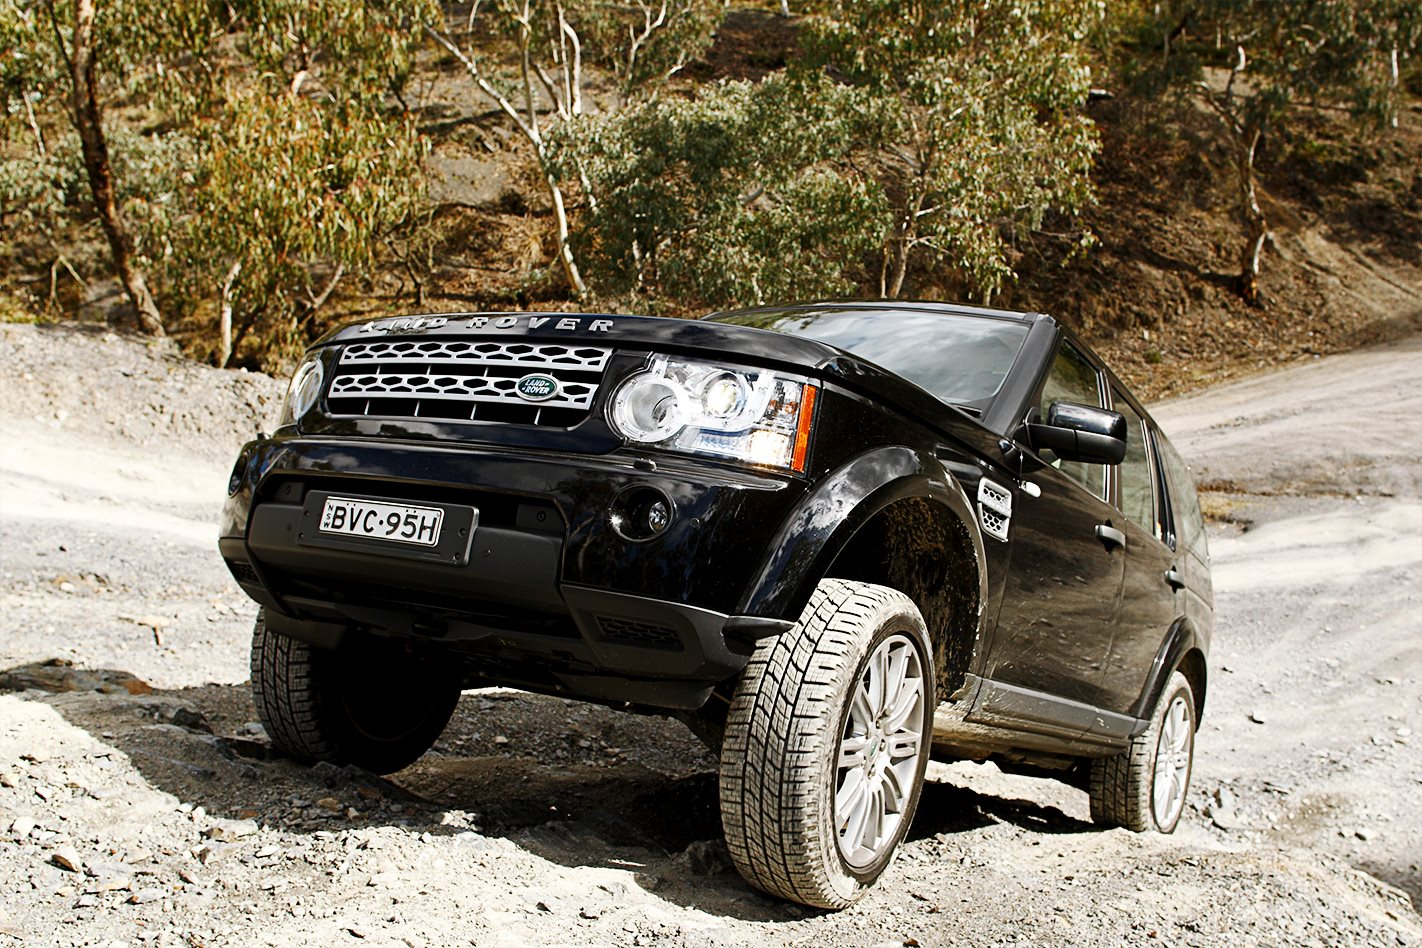 2011 Land Rover Discovery 4 front.jpg